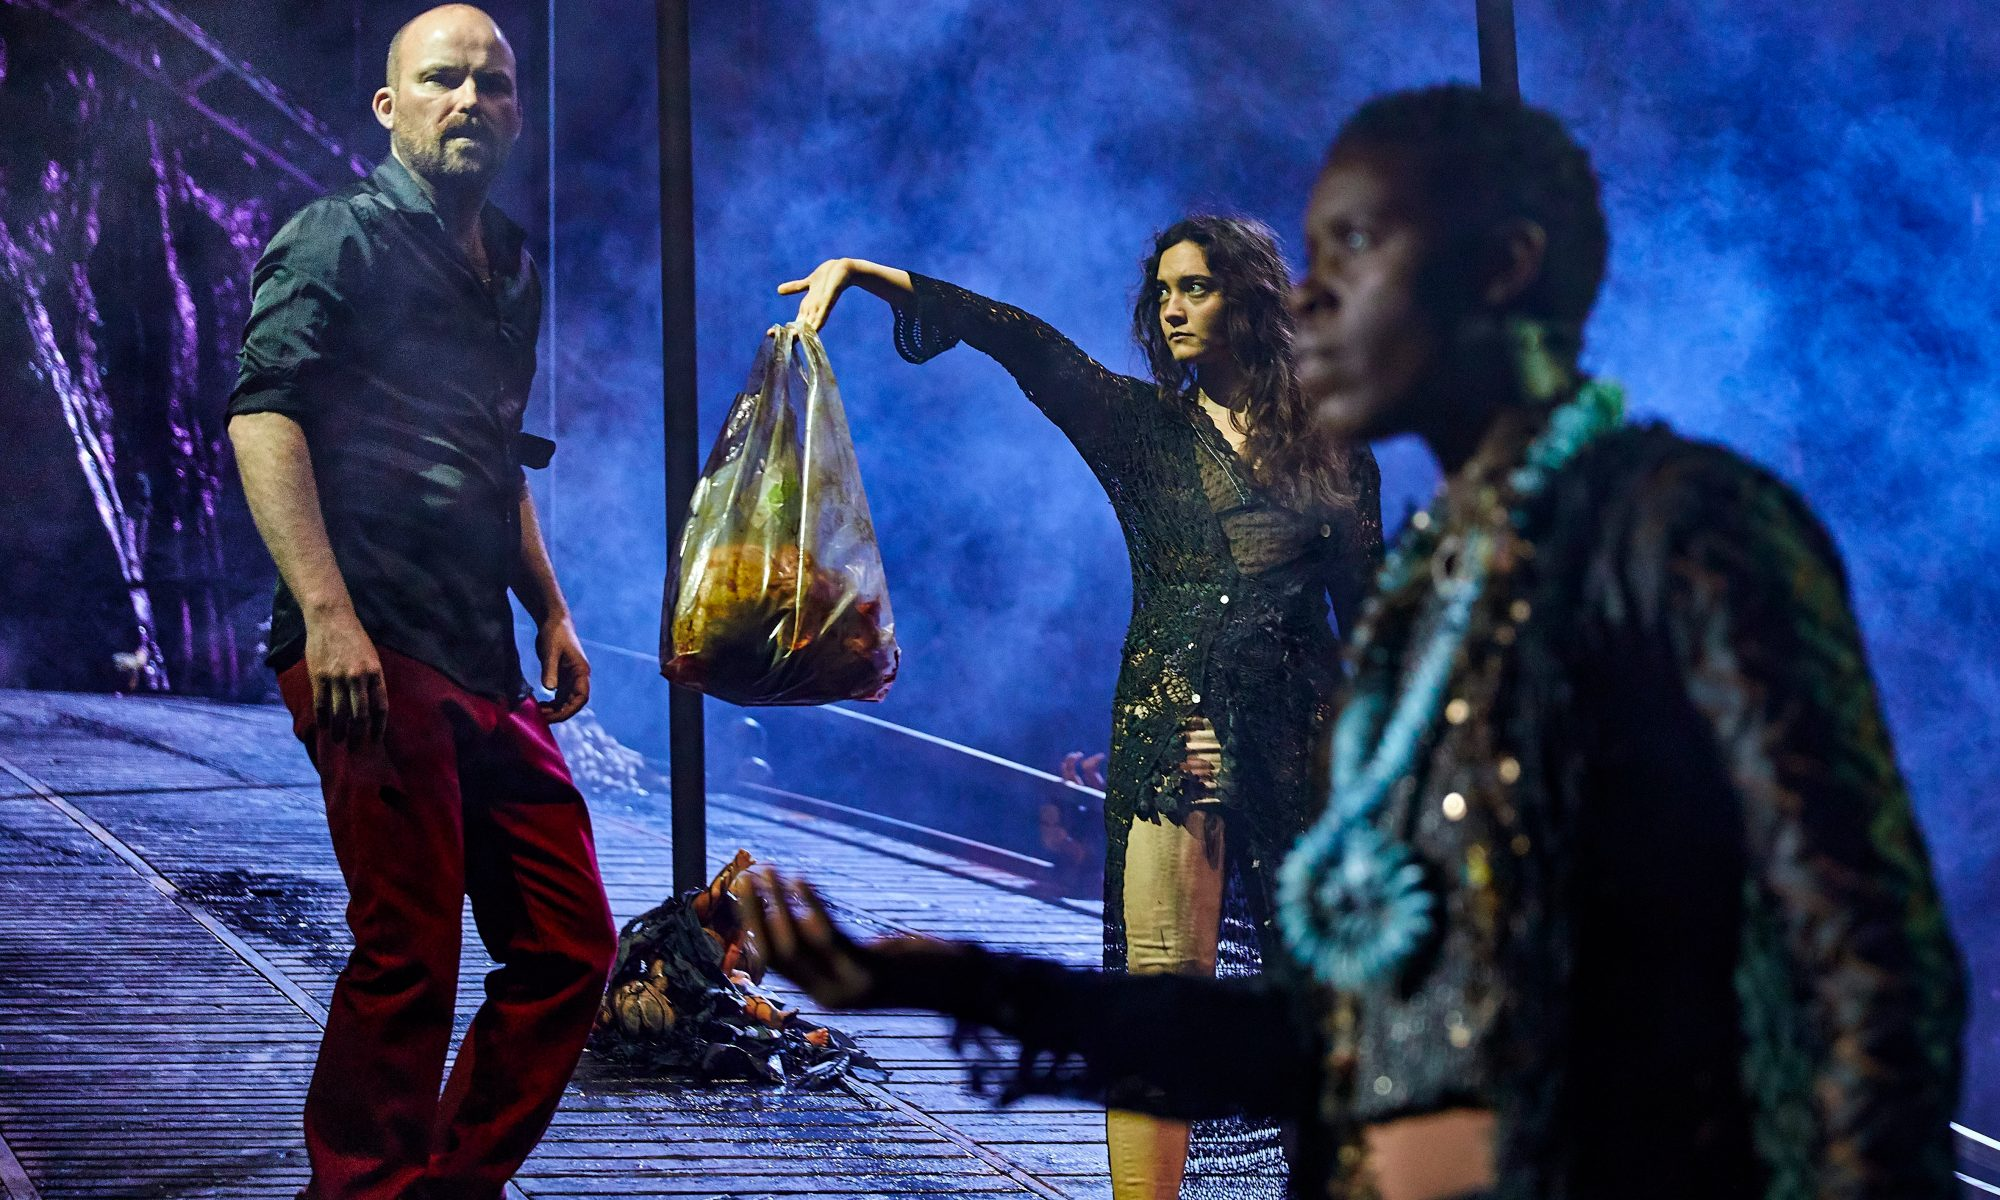 Rory Kinnear as Macbeth, Beatrice Scirocchi as Witch and Anna-Maria Nabirye as Witch in Macbeth at the National Theatre (c) Brinkhoff Mögenburg 1002-1006